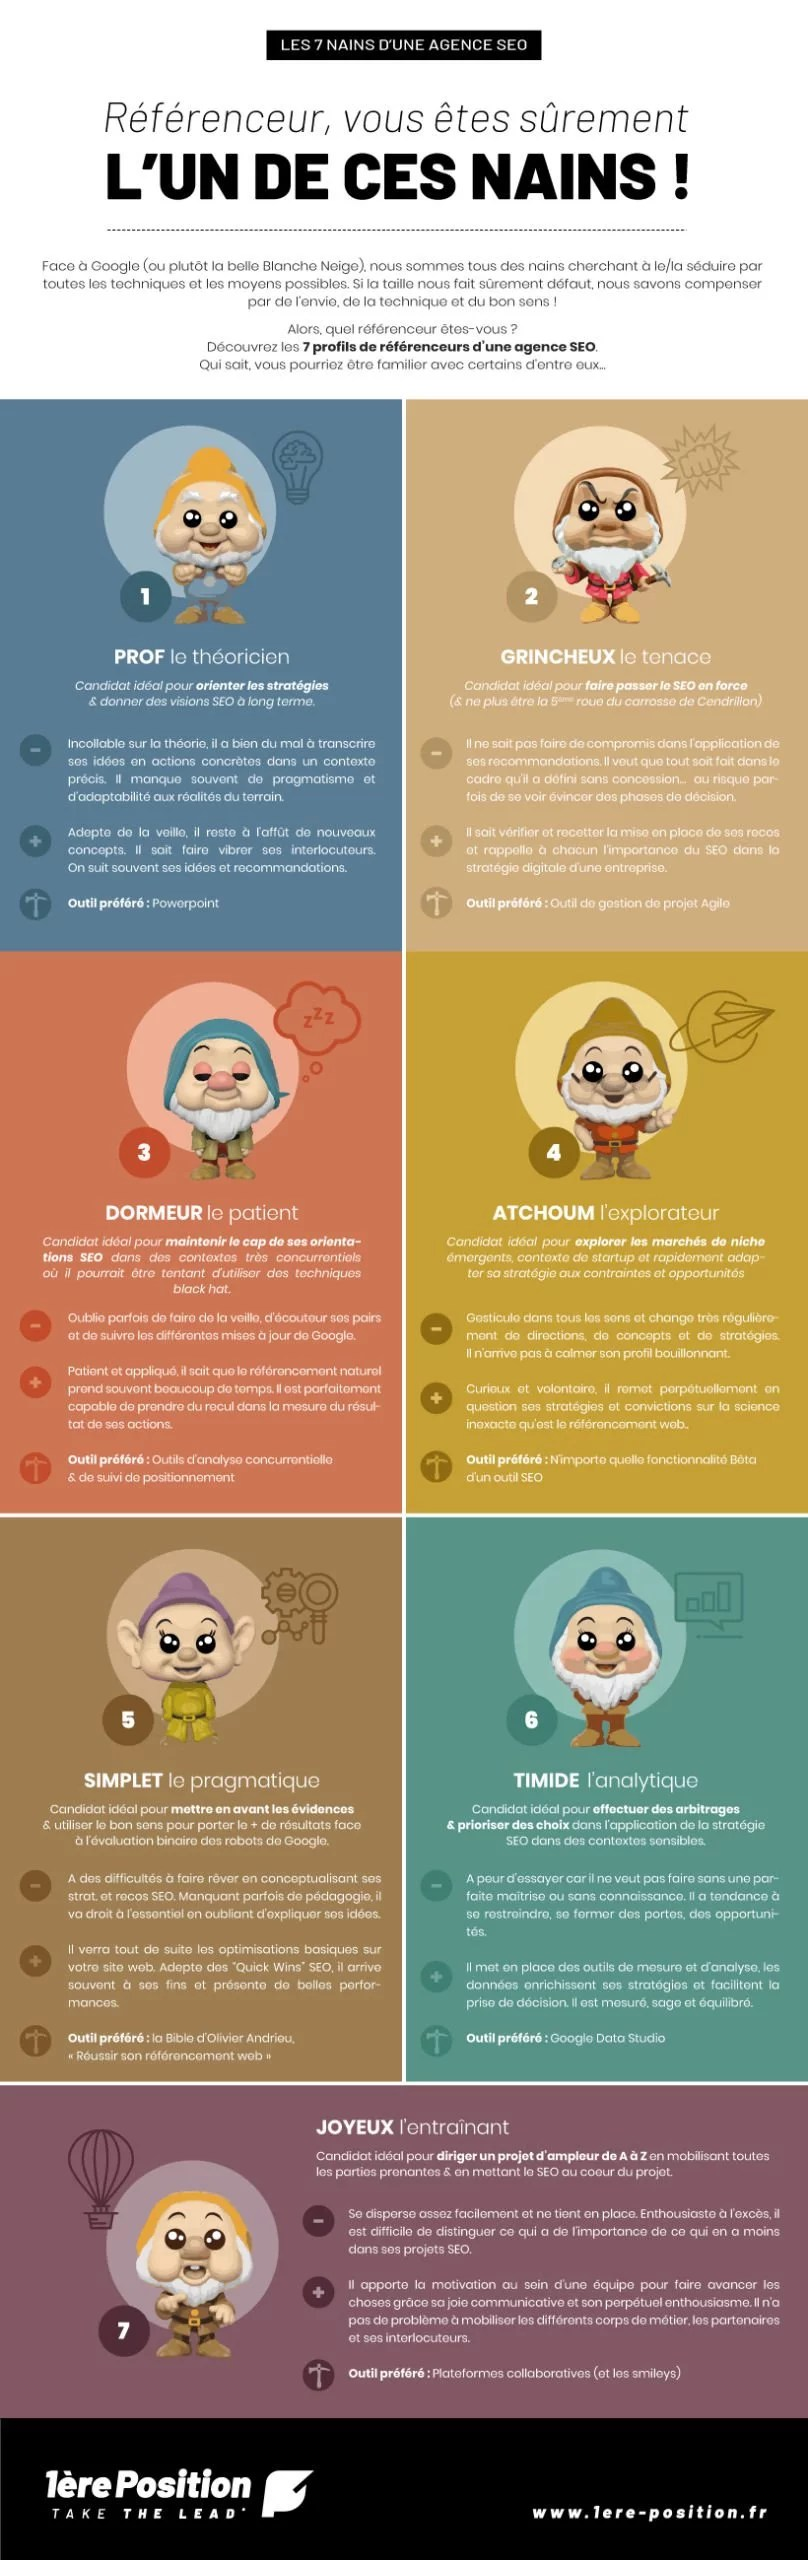 Infographic presenting the 7 dwarfs of an SEO agency